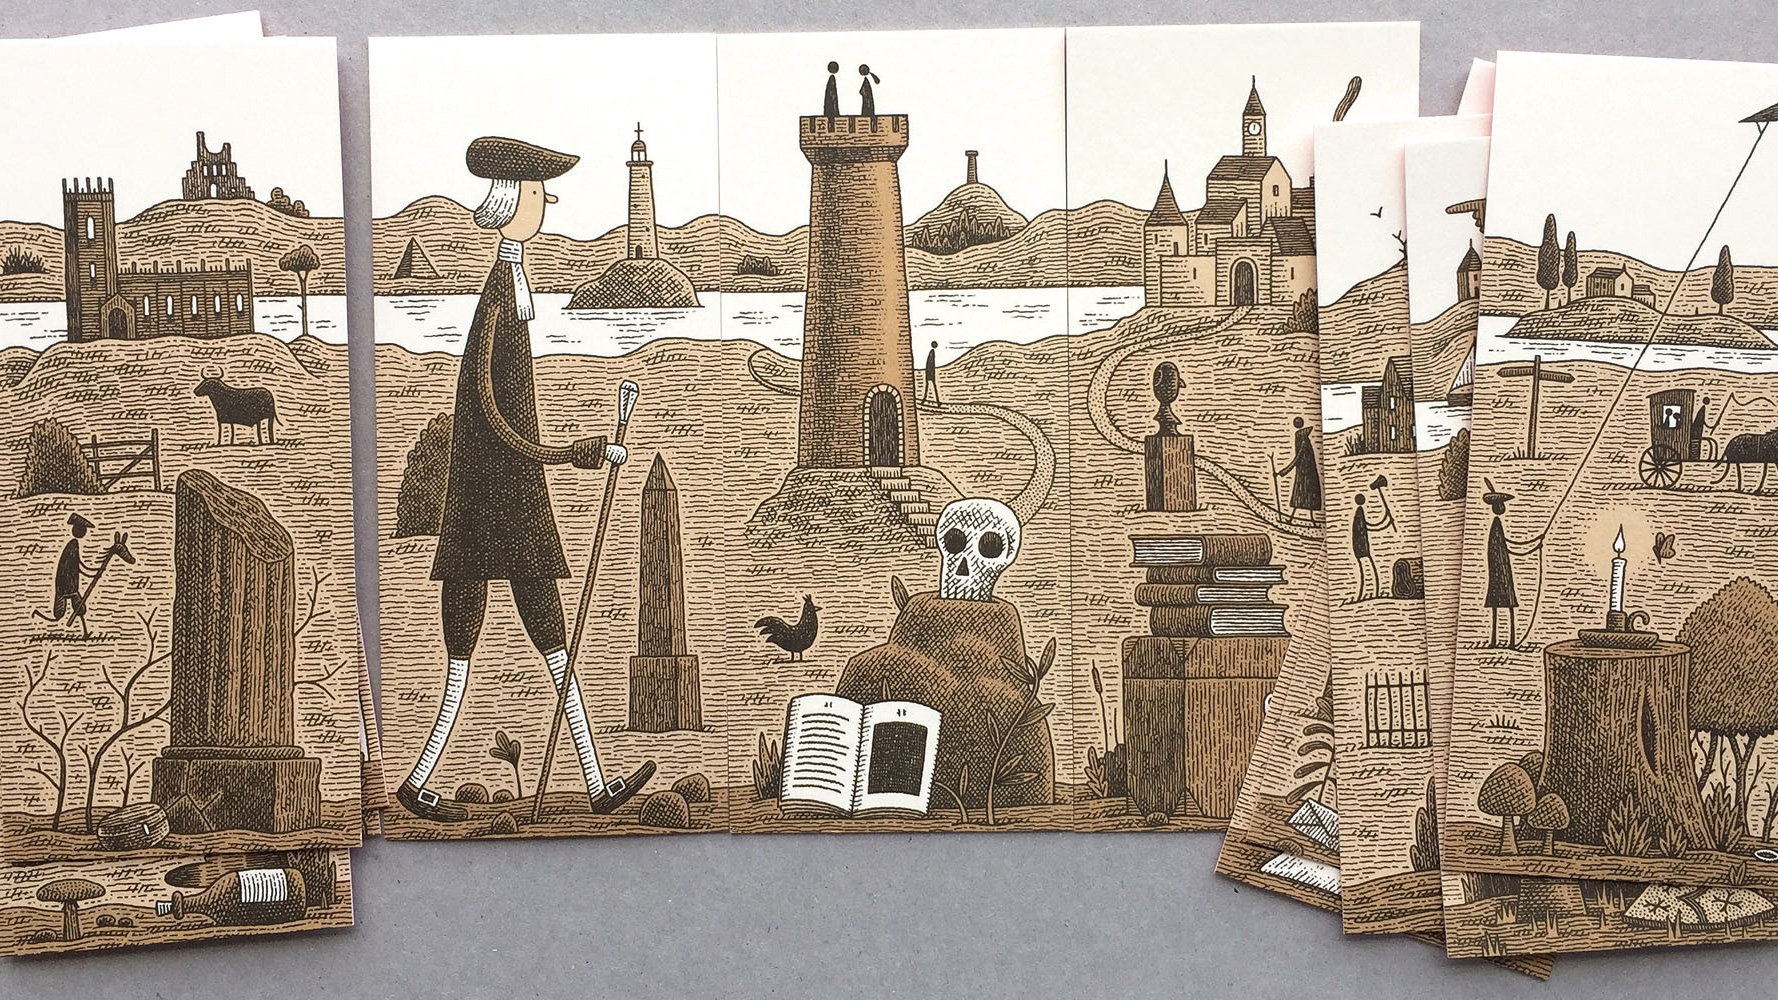 Tom Gauld Illustrates Cards That You Can Rearrange To Tell